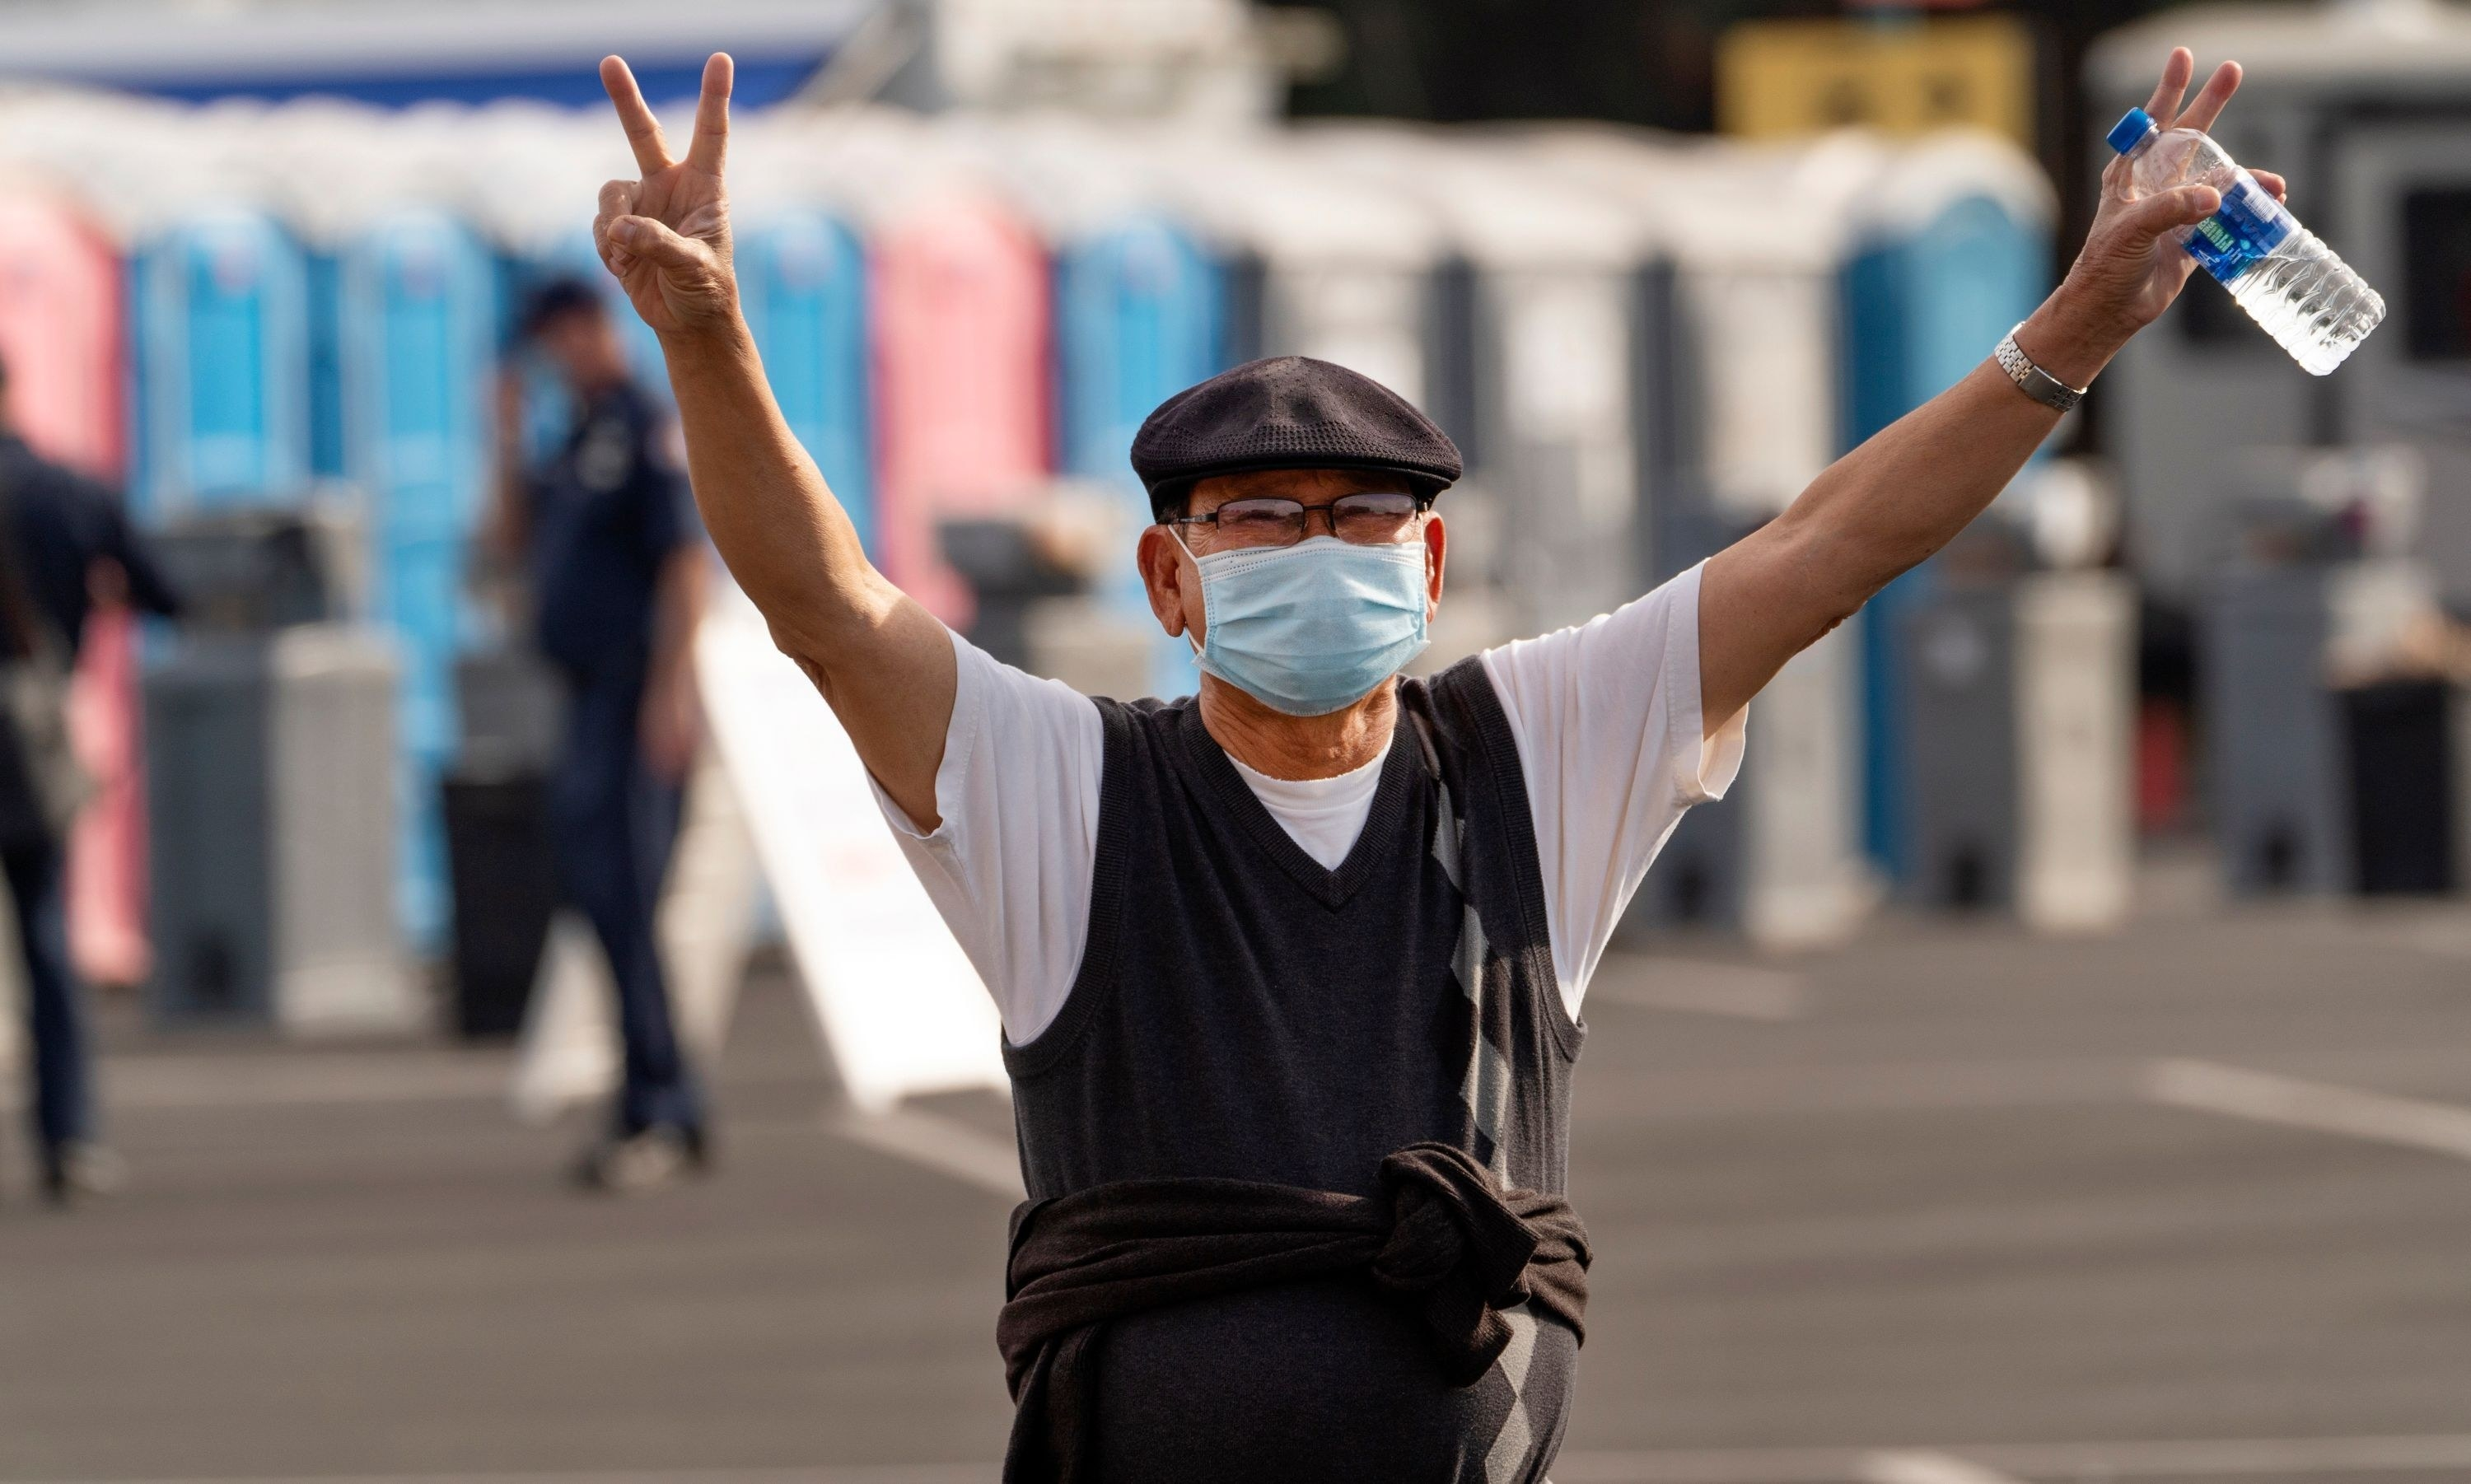 a newly vaccinated man throws peace signs in the air gleefully